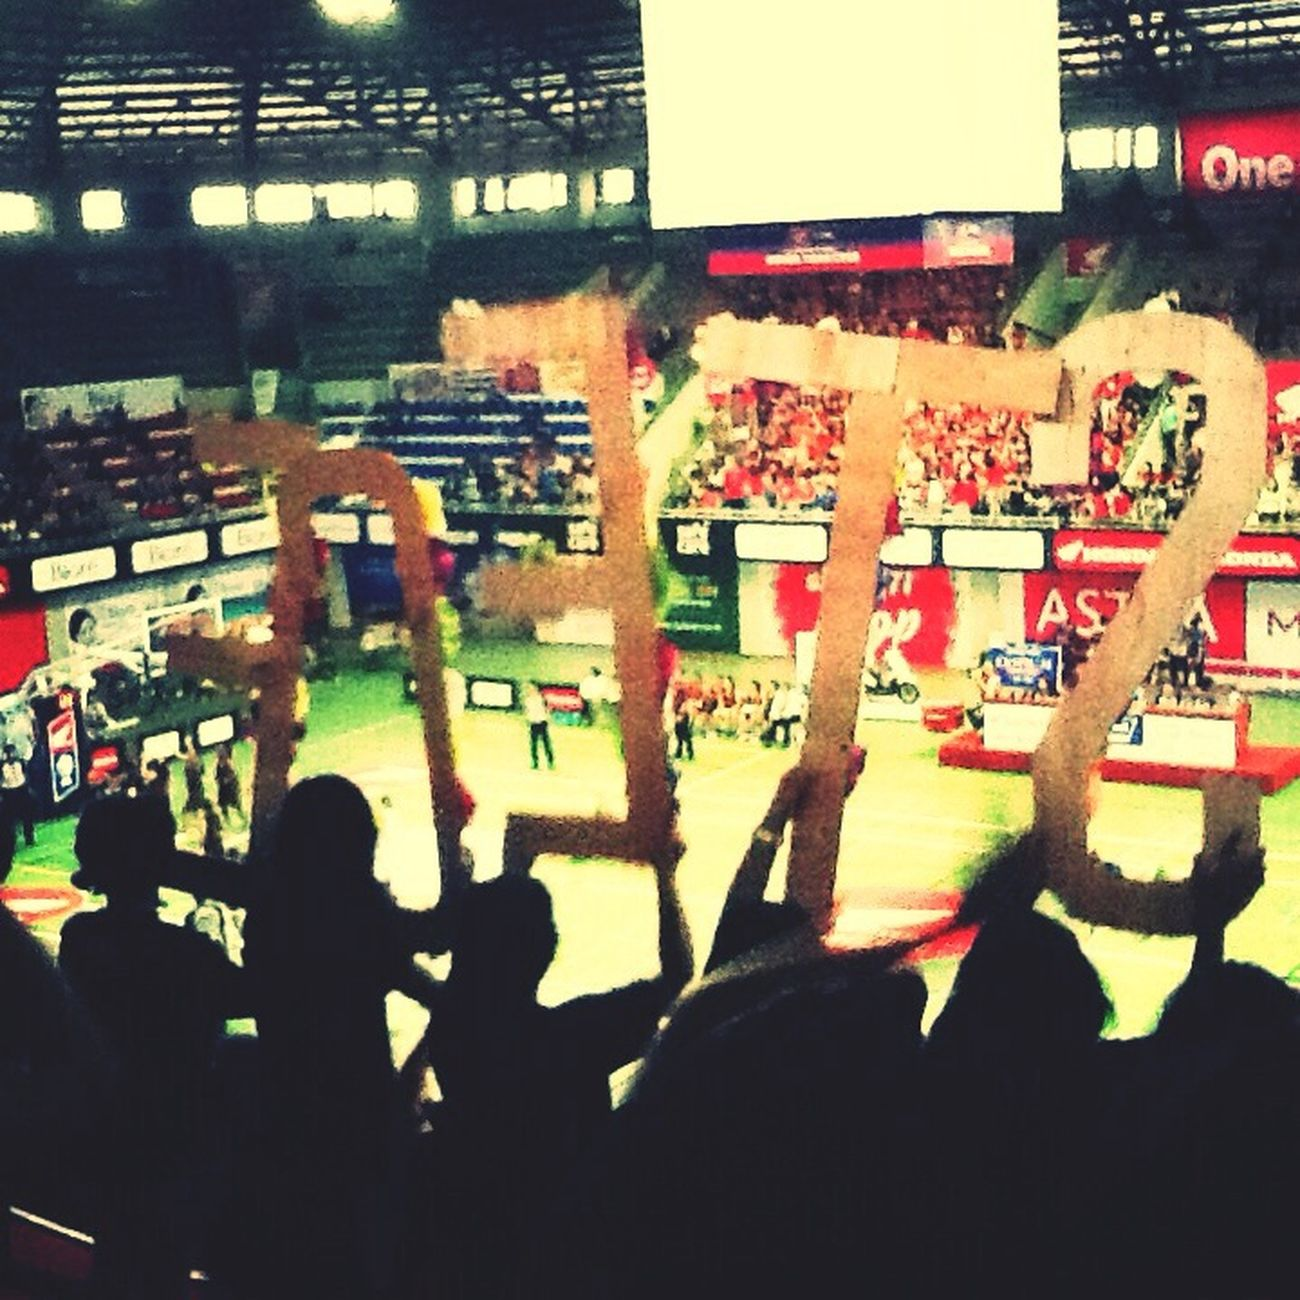 STECE emang kebanggaan banget, going to final DBL yes ;) Basketball Supporting My Team